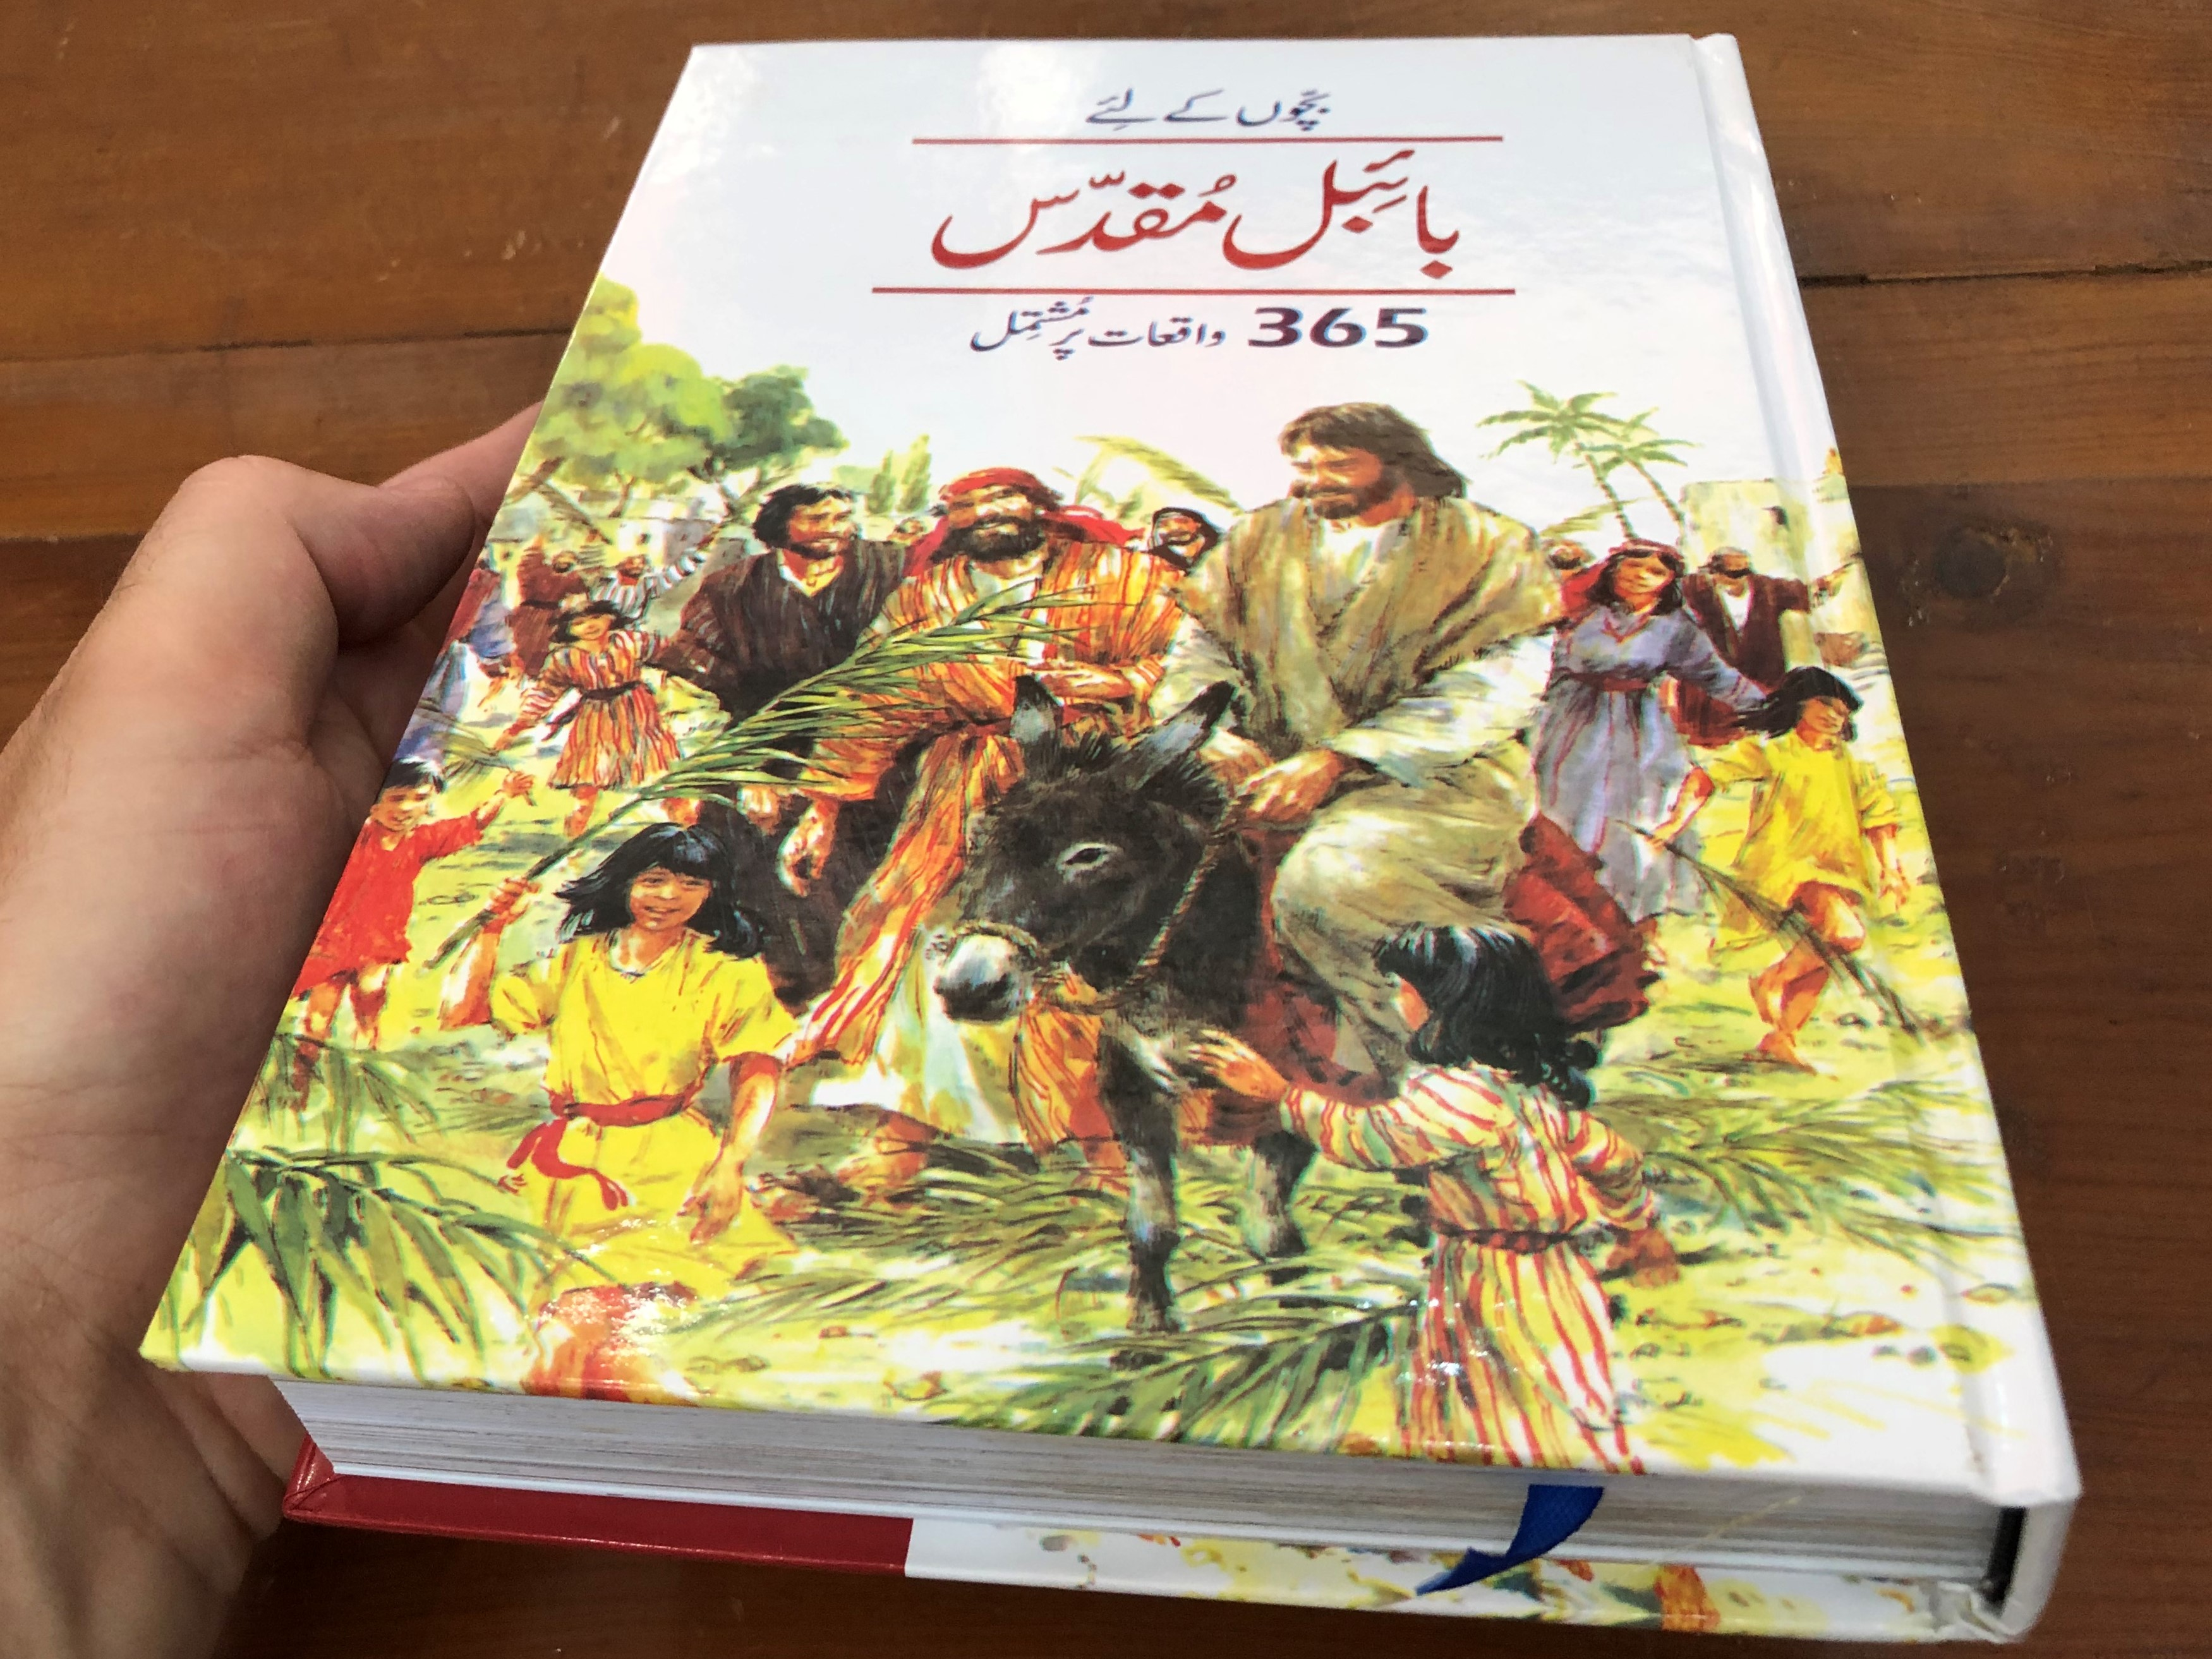 the-lion-children-s-bible-in-365-stories-by-mary-batchelor-urdu-edition-pakistan-bible-society-2018-hardcover-19-.jpg